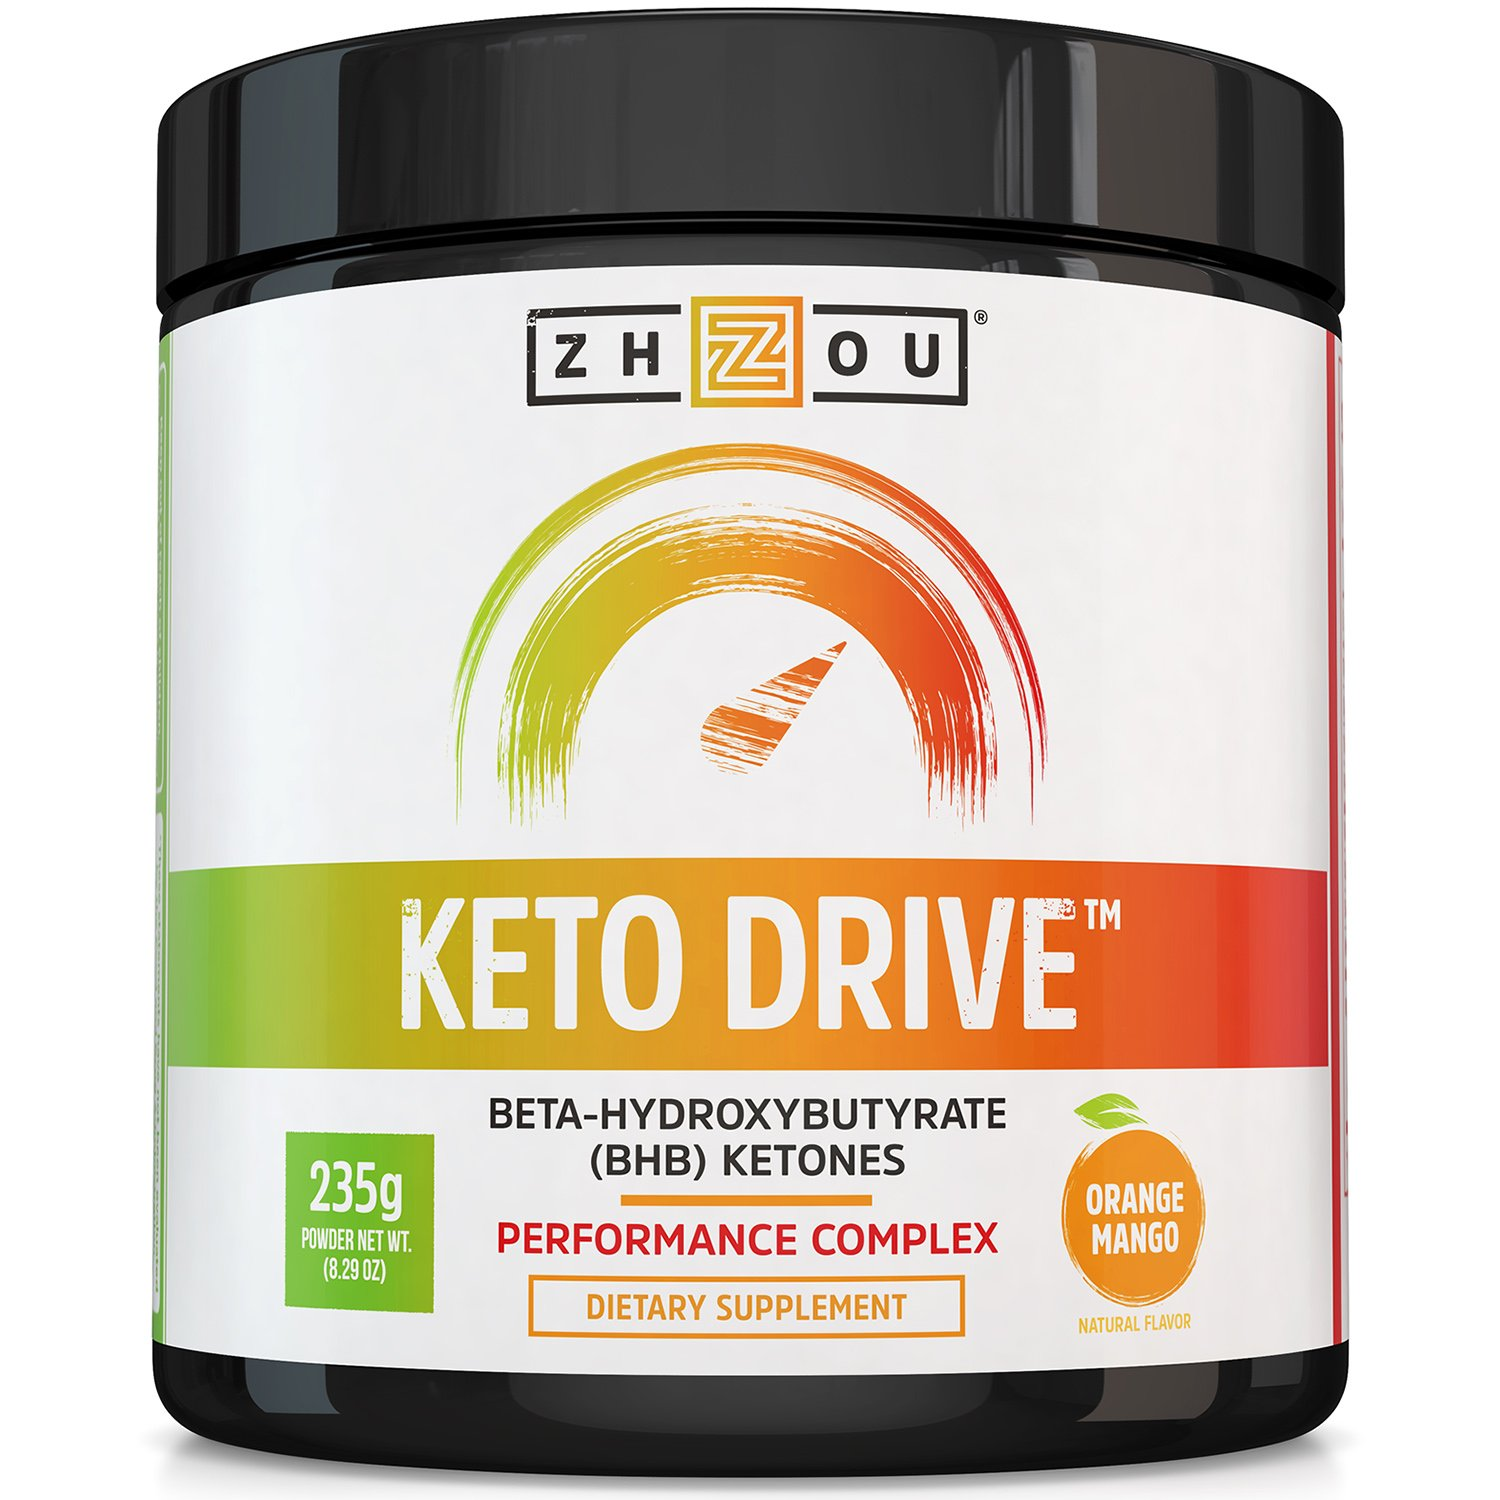 Keto Drive BHB Salts - Exogenous Ketone Performance Complex - Formulated for Ketosis, Energy and Focus - Patented Beta-Hydroxybutyrates (Calcium, Sodium, Magnesium) - Orange Mango by Zhou Nutrition